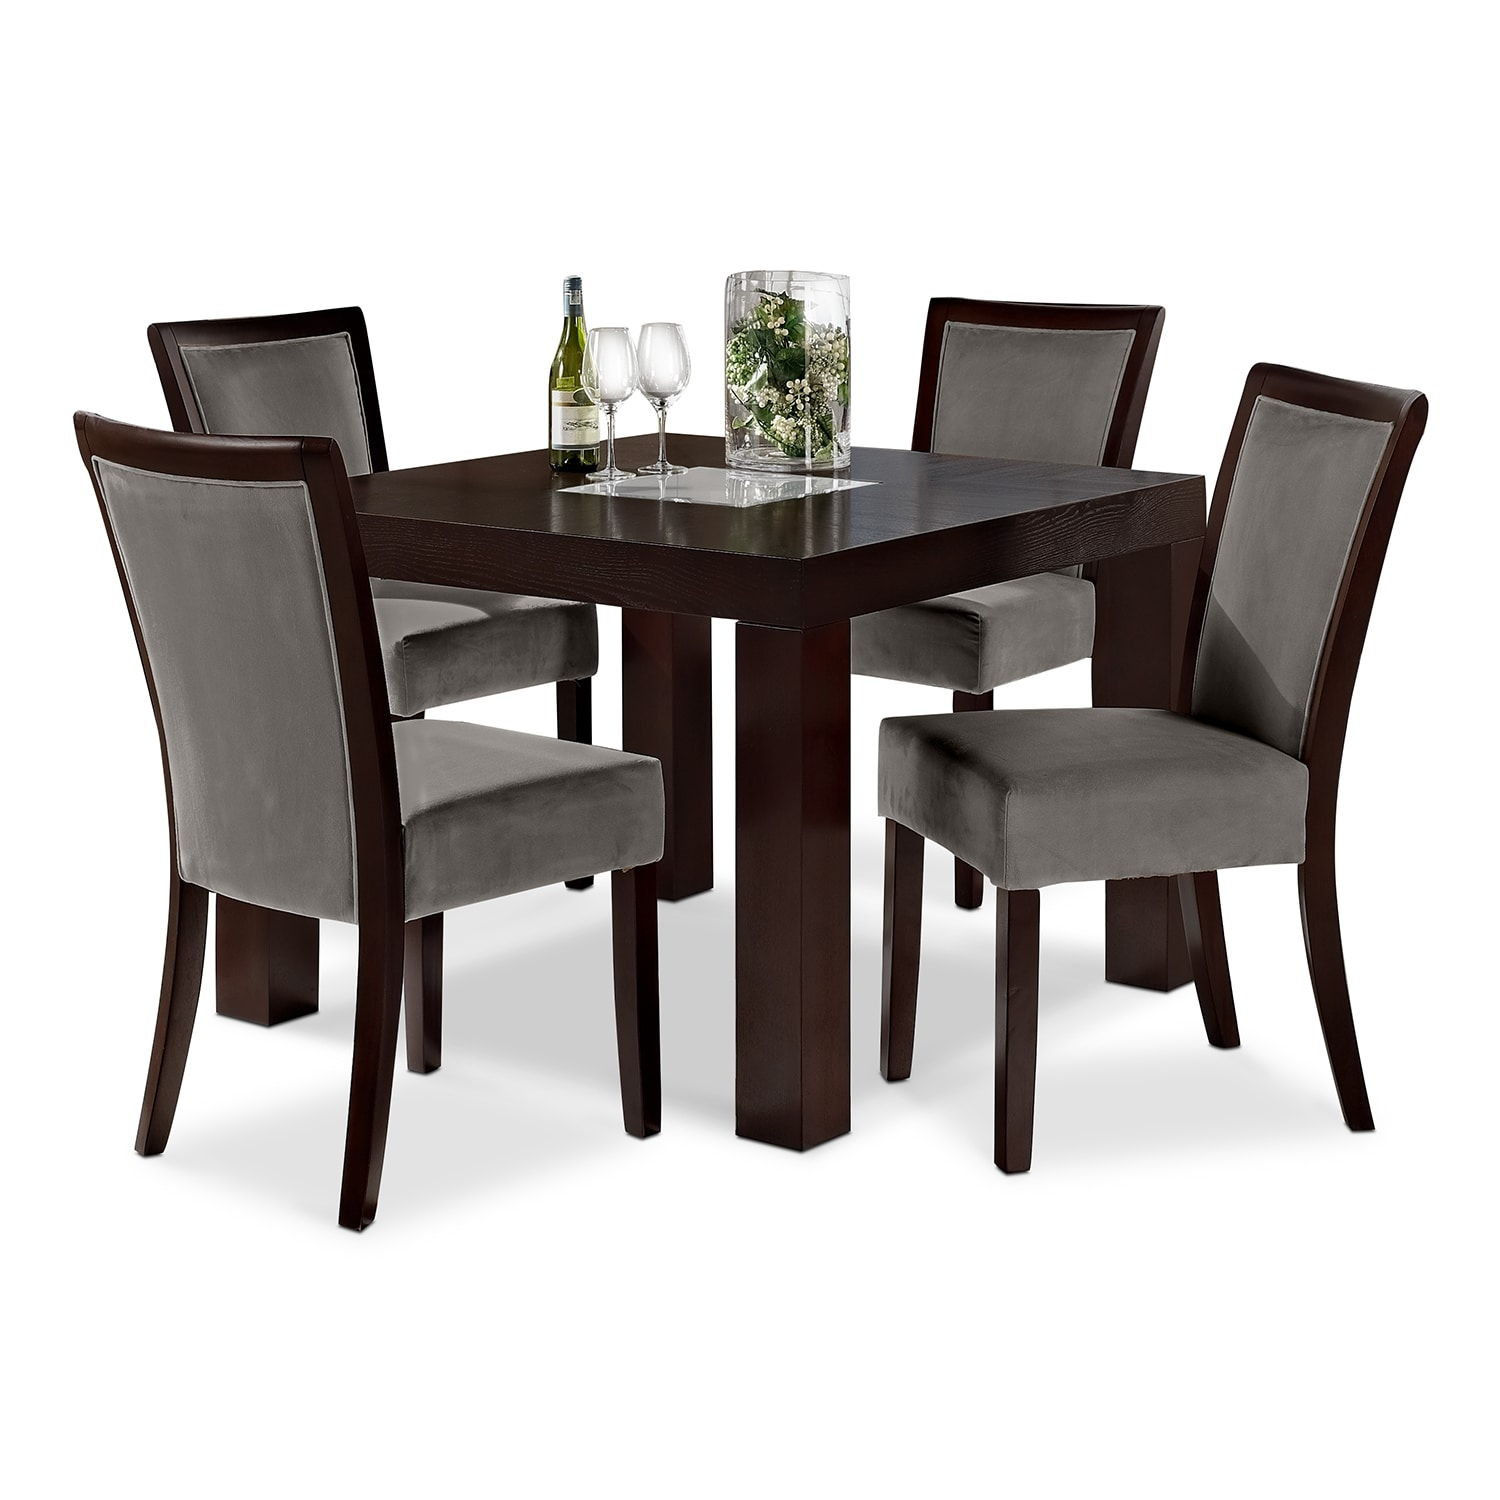 "Tango Gray 5 Pc. Dinette (42"" Table)"